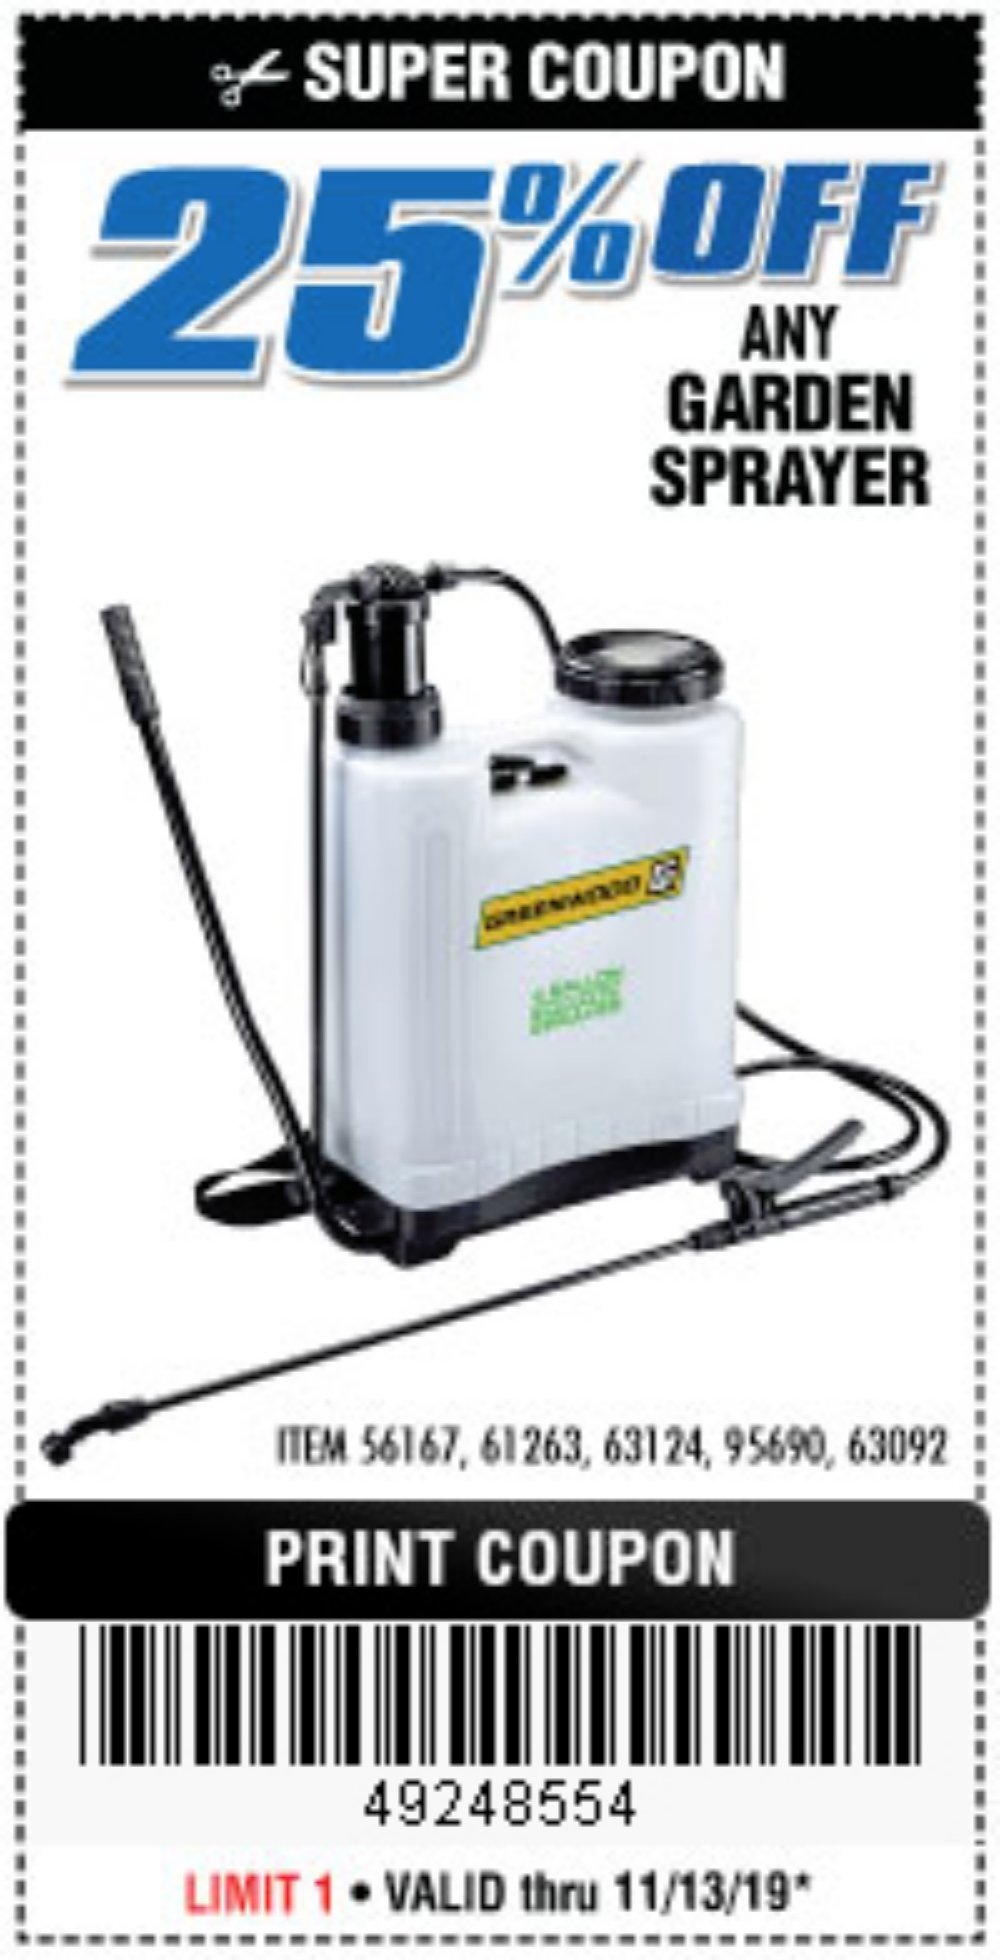 Harbor Freight Coupon, HF Coupons - 25% off any garden sprayer